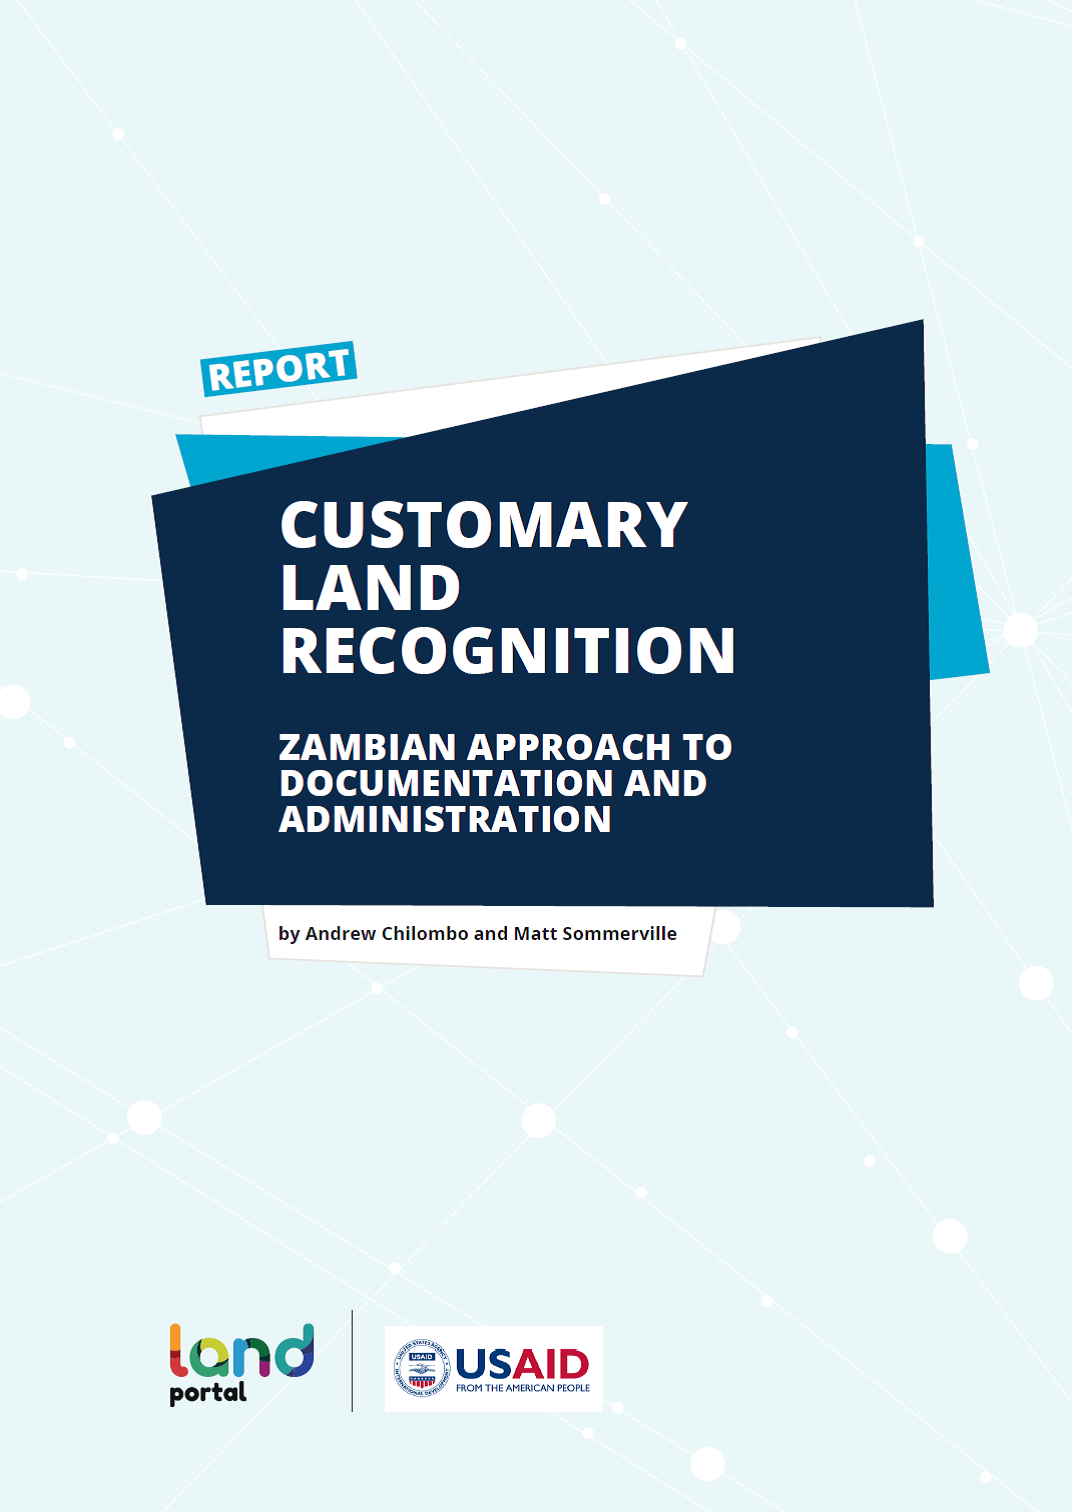 Customary Land Recognition in Zambia